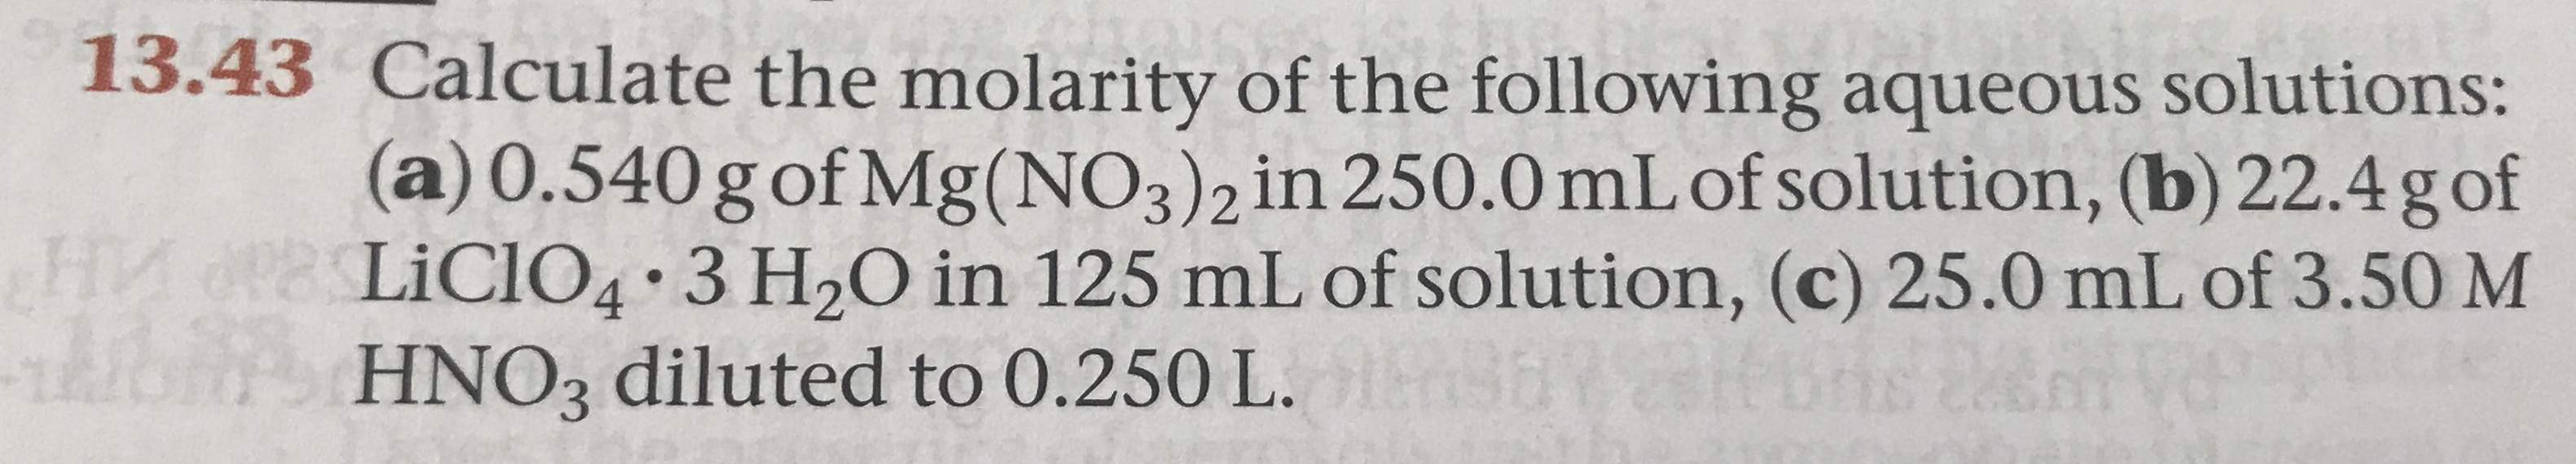 13.43 Calculate the molarity of the following aqueous solutions: (a) 0.540 g of Mg (NO3 ) 2 in 250.0 mL of solution, (b) 22.4 g of FHIA PLiCIO4 3 H20 in 125 mL of solution, (c) 25.0 mL of 3.50 M A HNO3 diluted to 0.250 L. s n